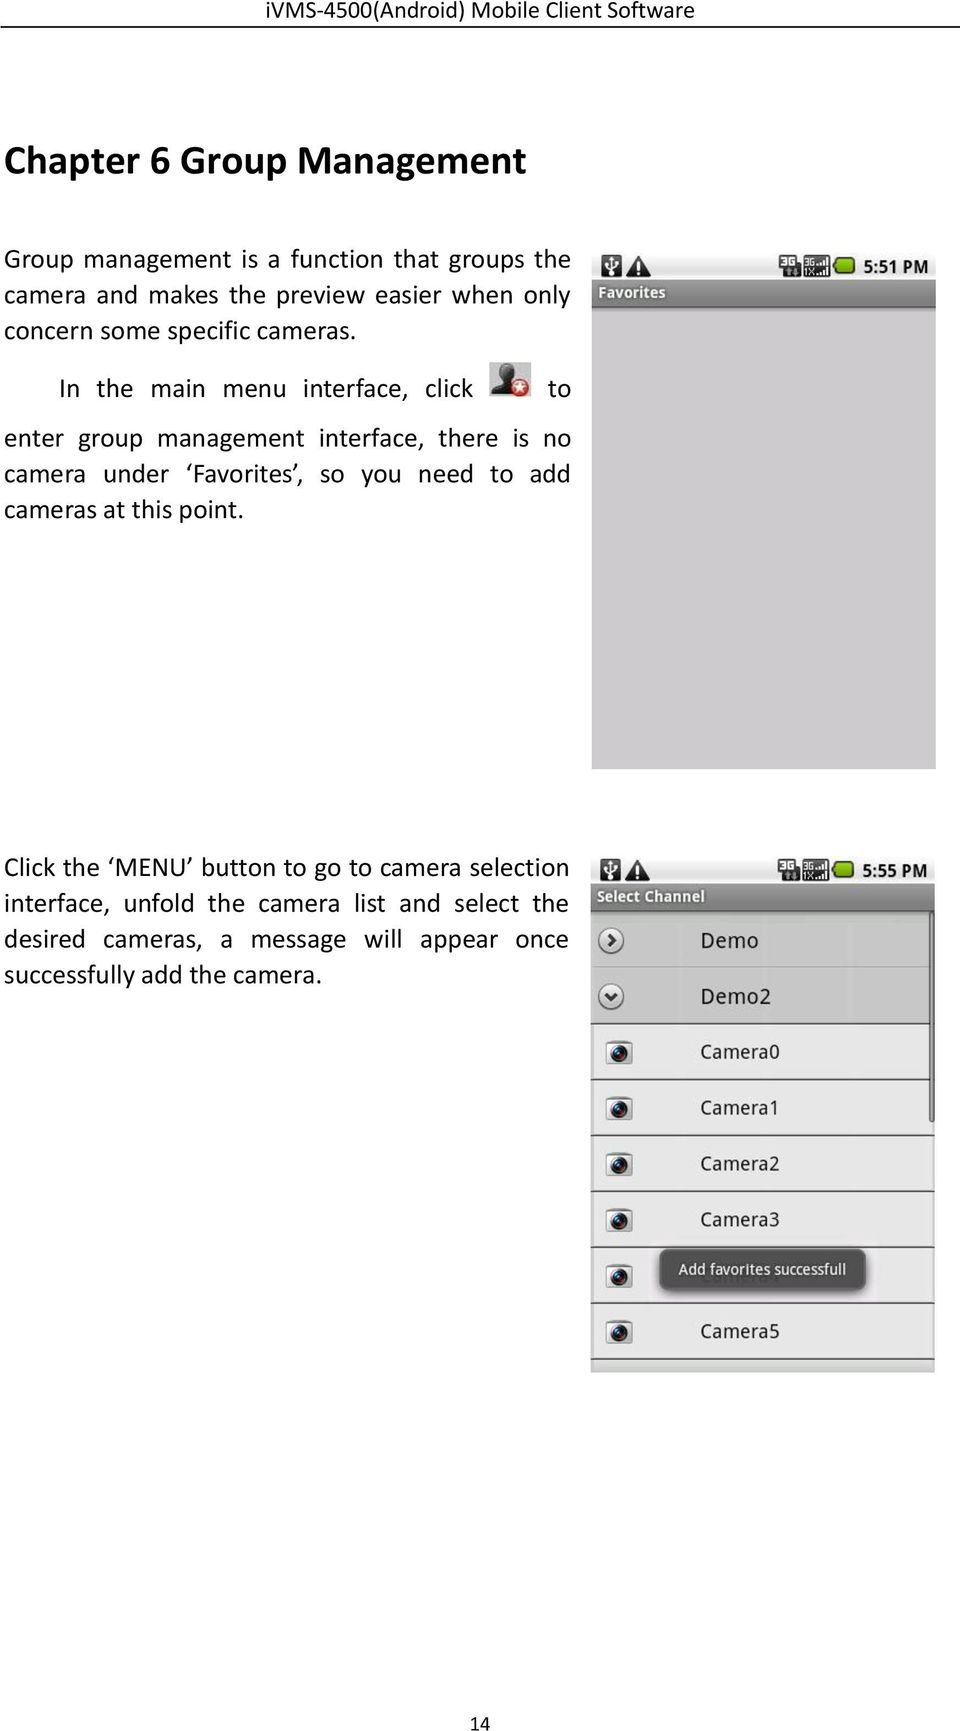 In the main menu interface, click enter group management interface, there is no camera under Favorites, so you need